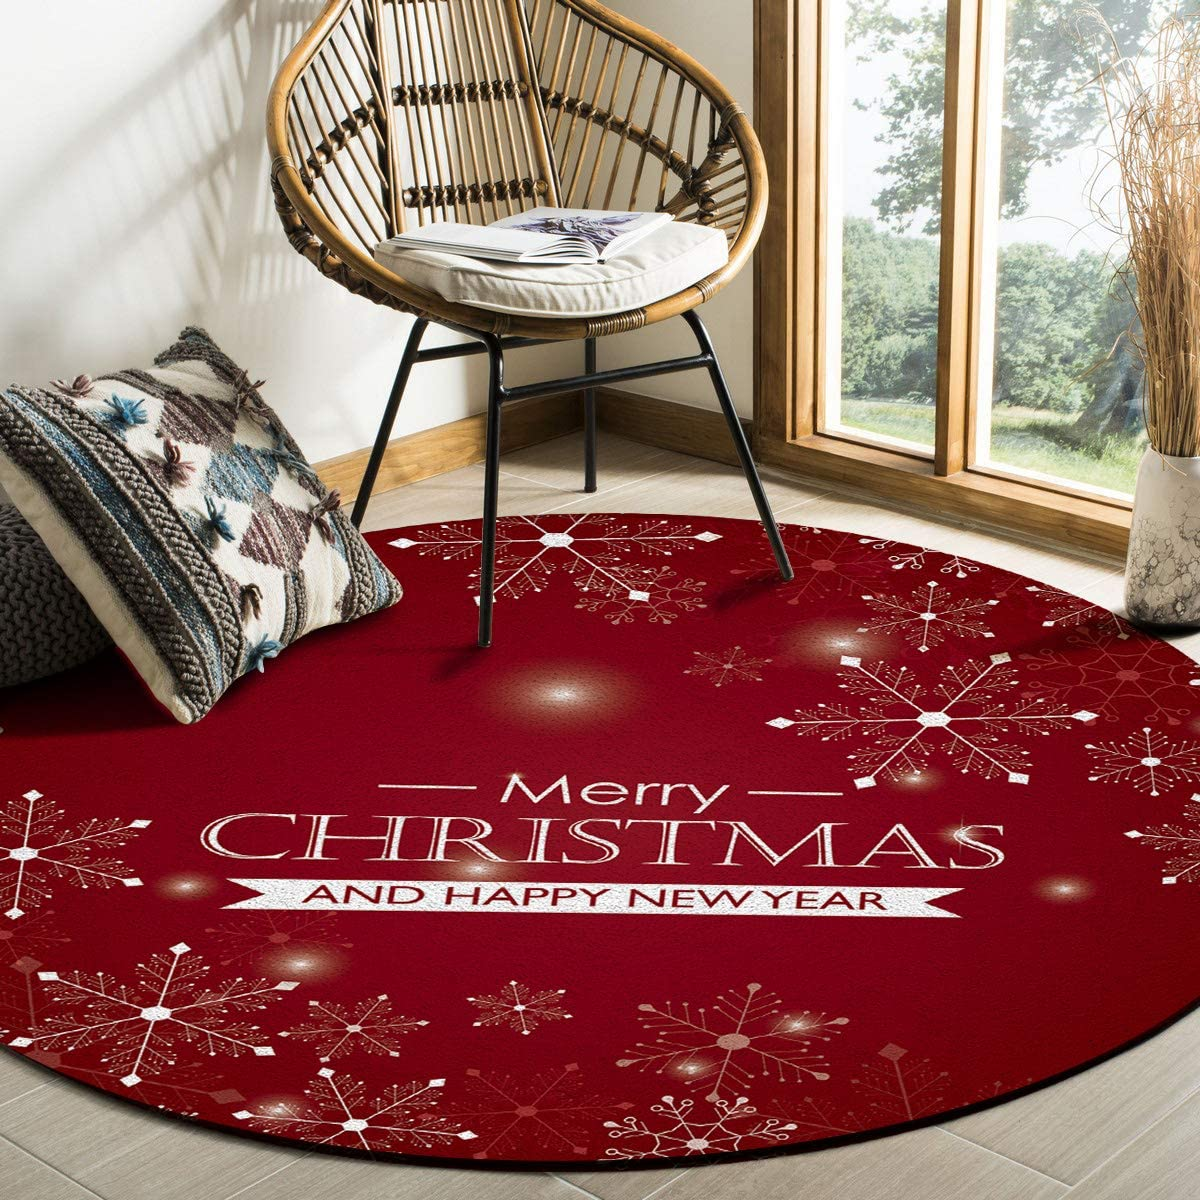 Merry Christmas Snowflake Area Rug Round Yea Rugs 4ft New products, world's highest quality popular! Bombing new work Happy New